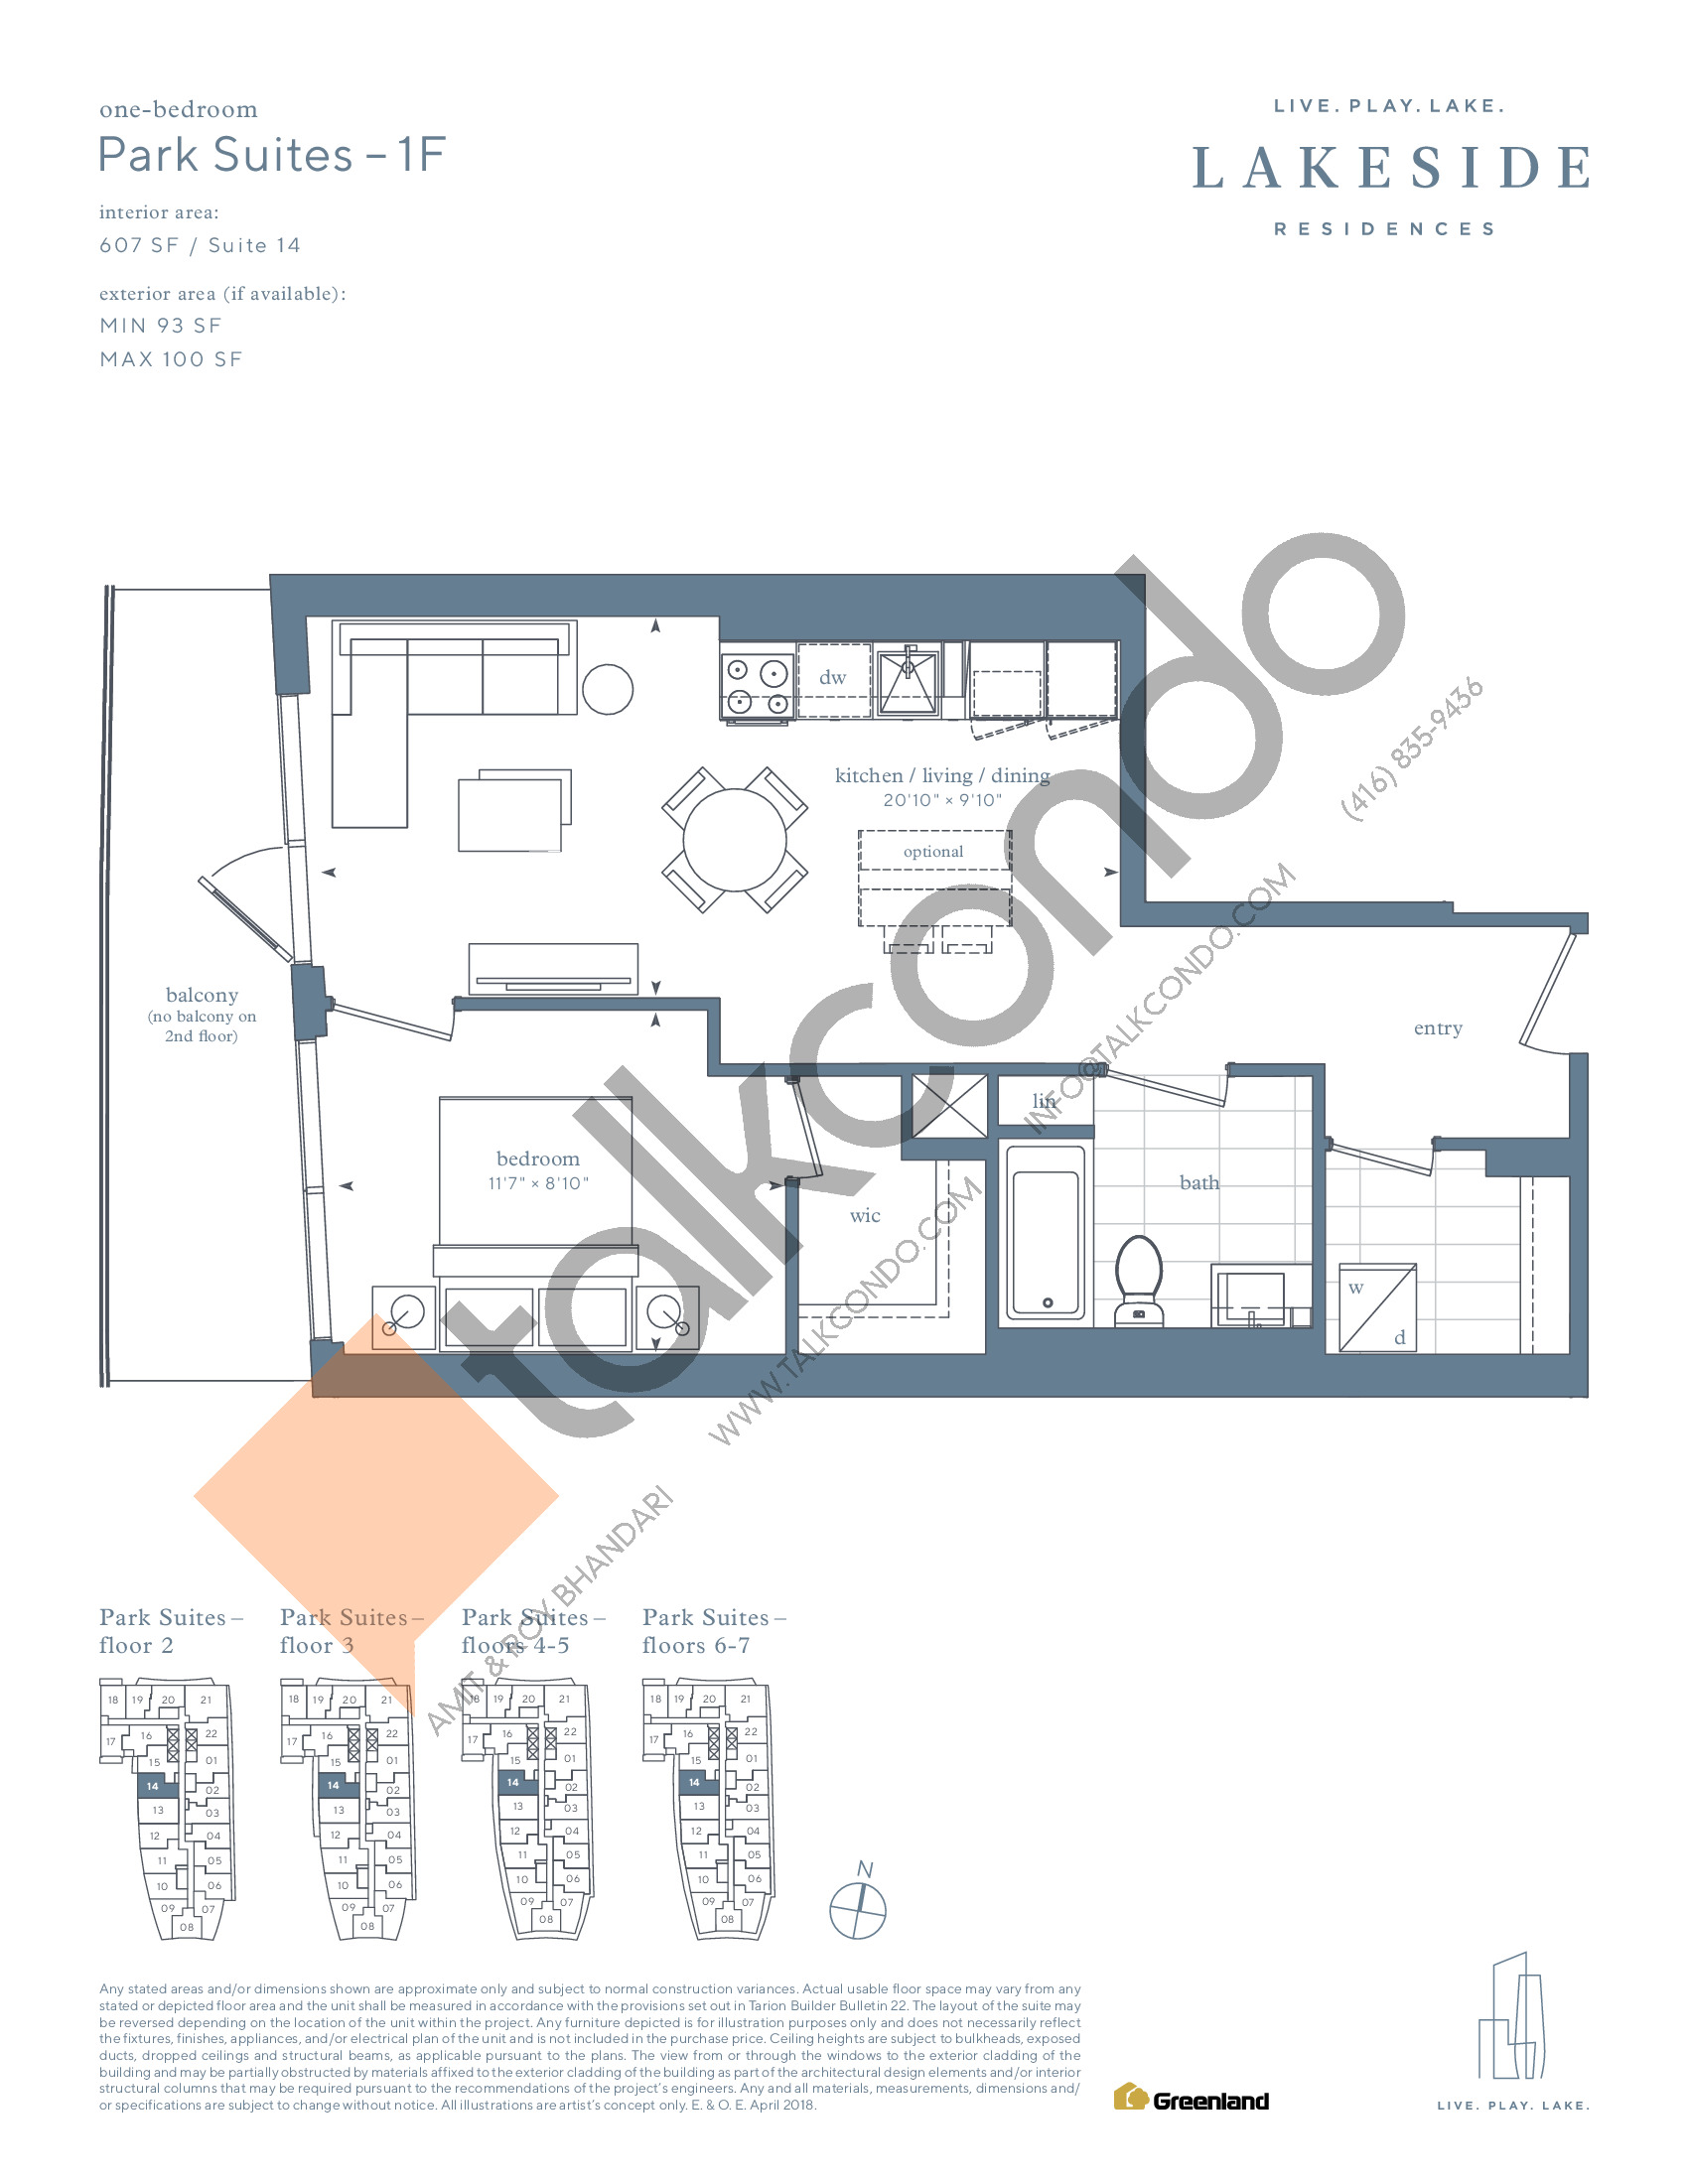 Park Suites - 1F Floor Plan at Lakeside Residences - 607 sq.ft